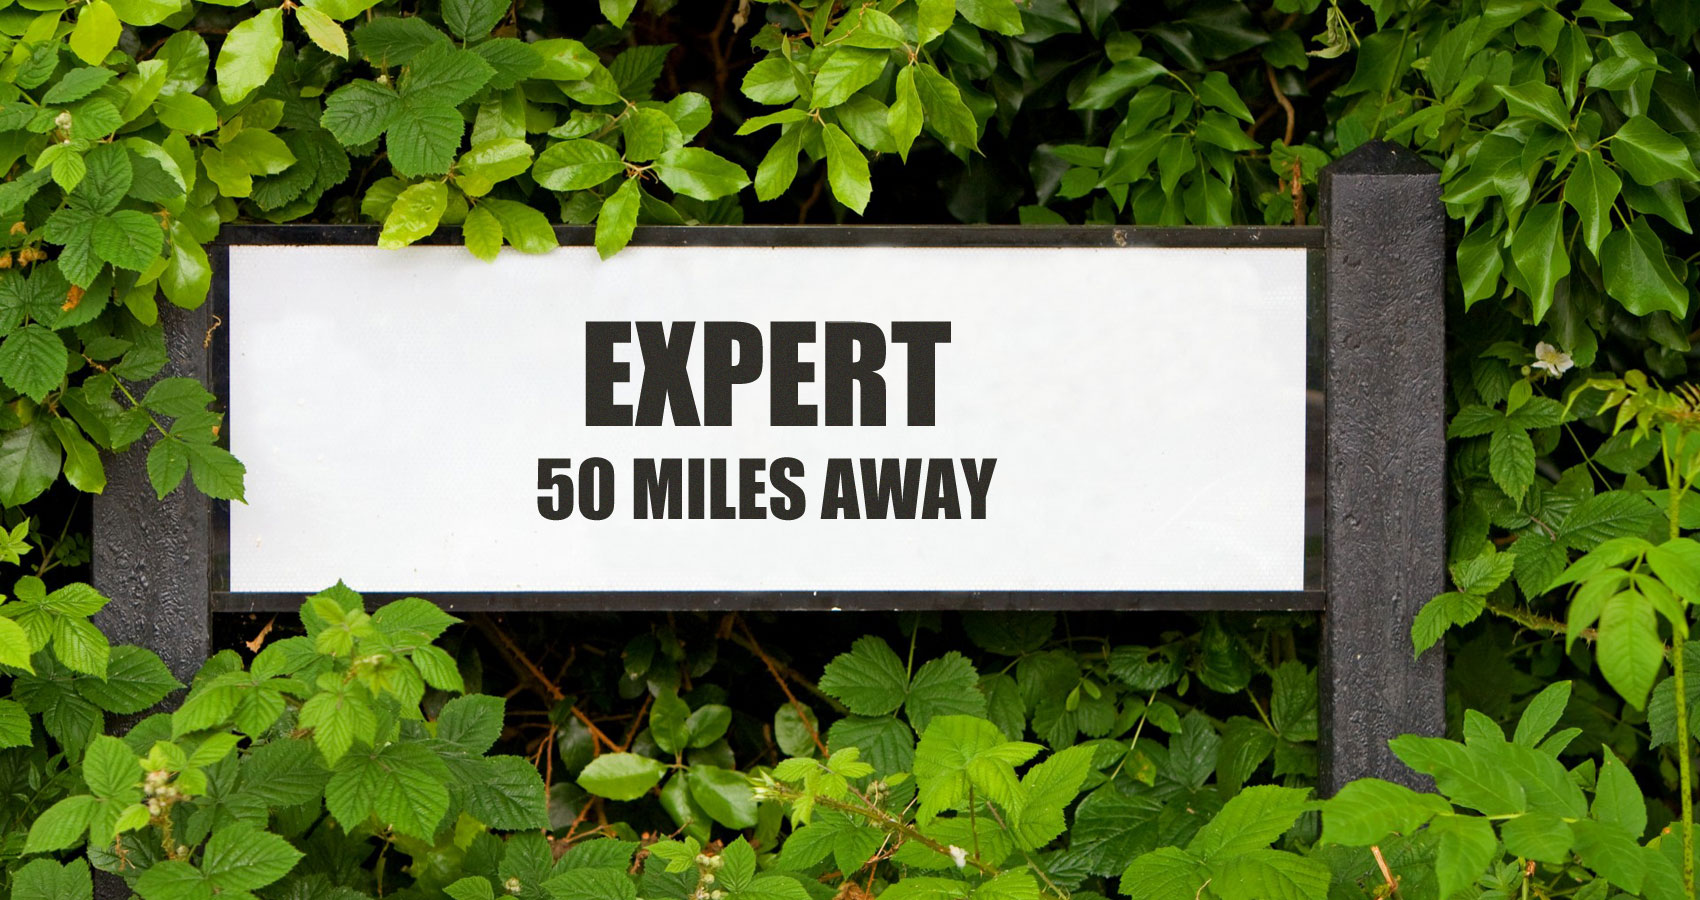 Expert From Fifty Miles Away, story by Anita G. Gorman at Spillwords.com